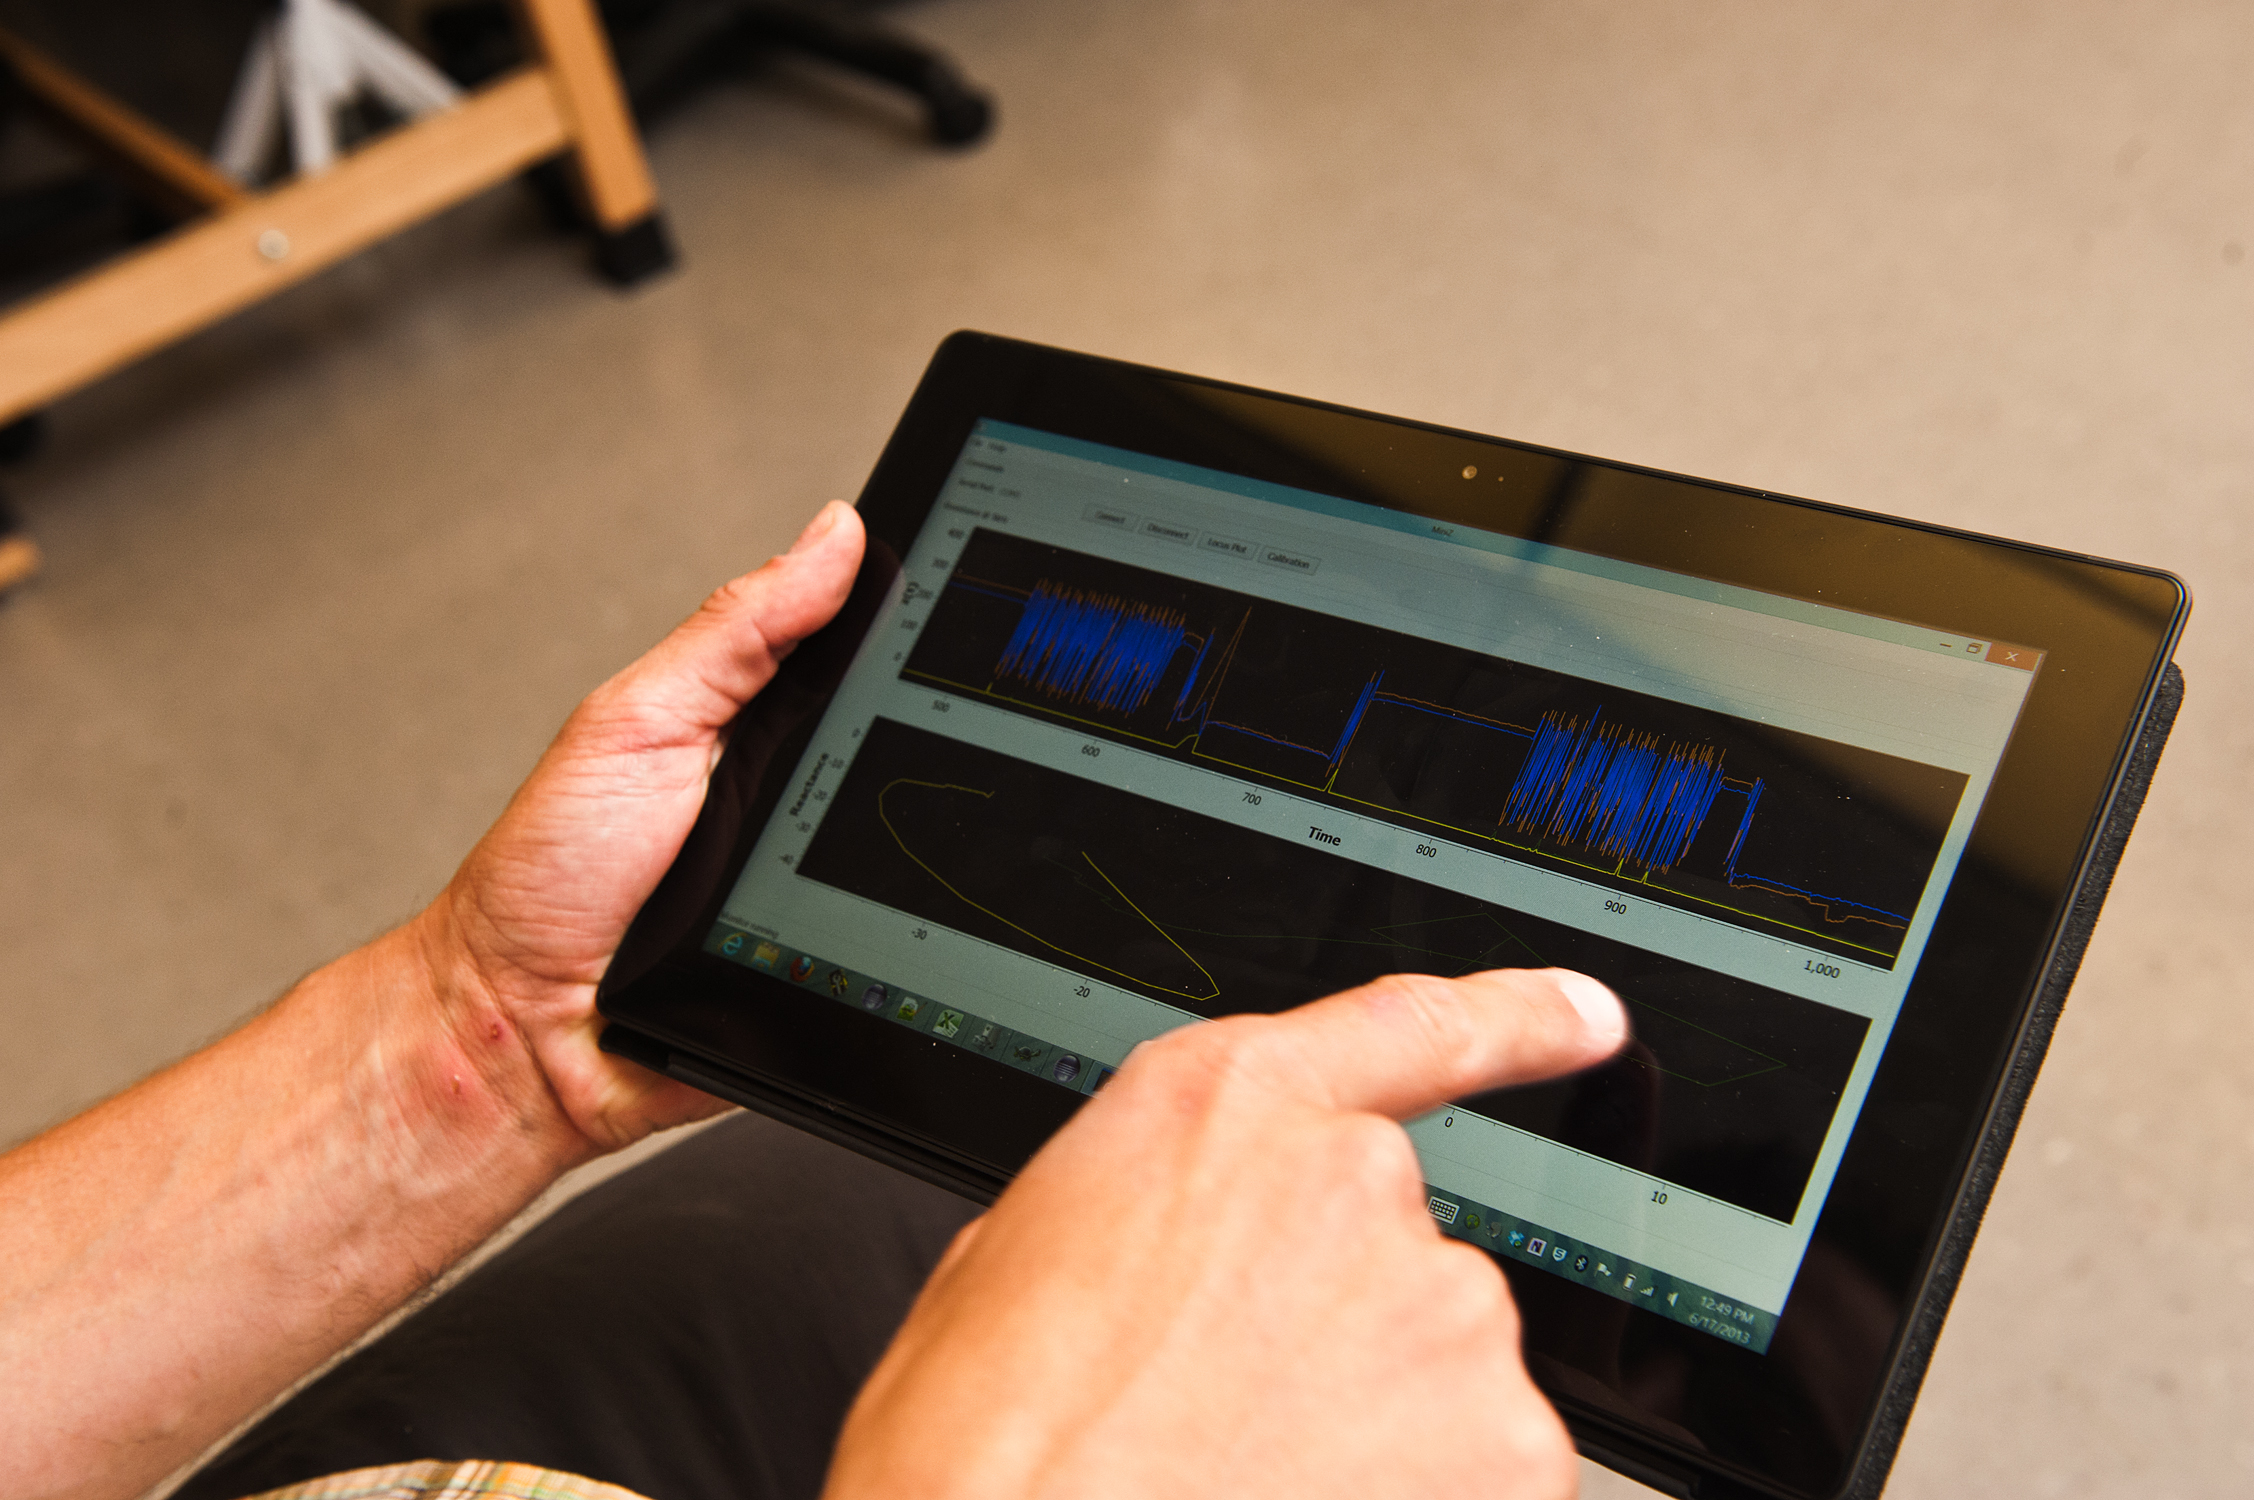 Tablet device shows real-time changes as Ron Bailey walks.